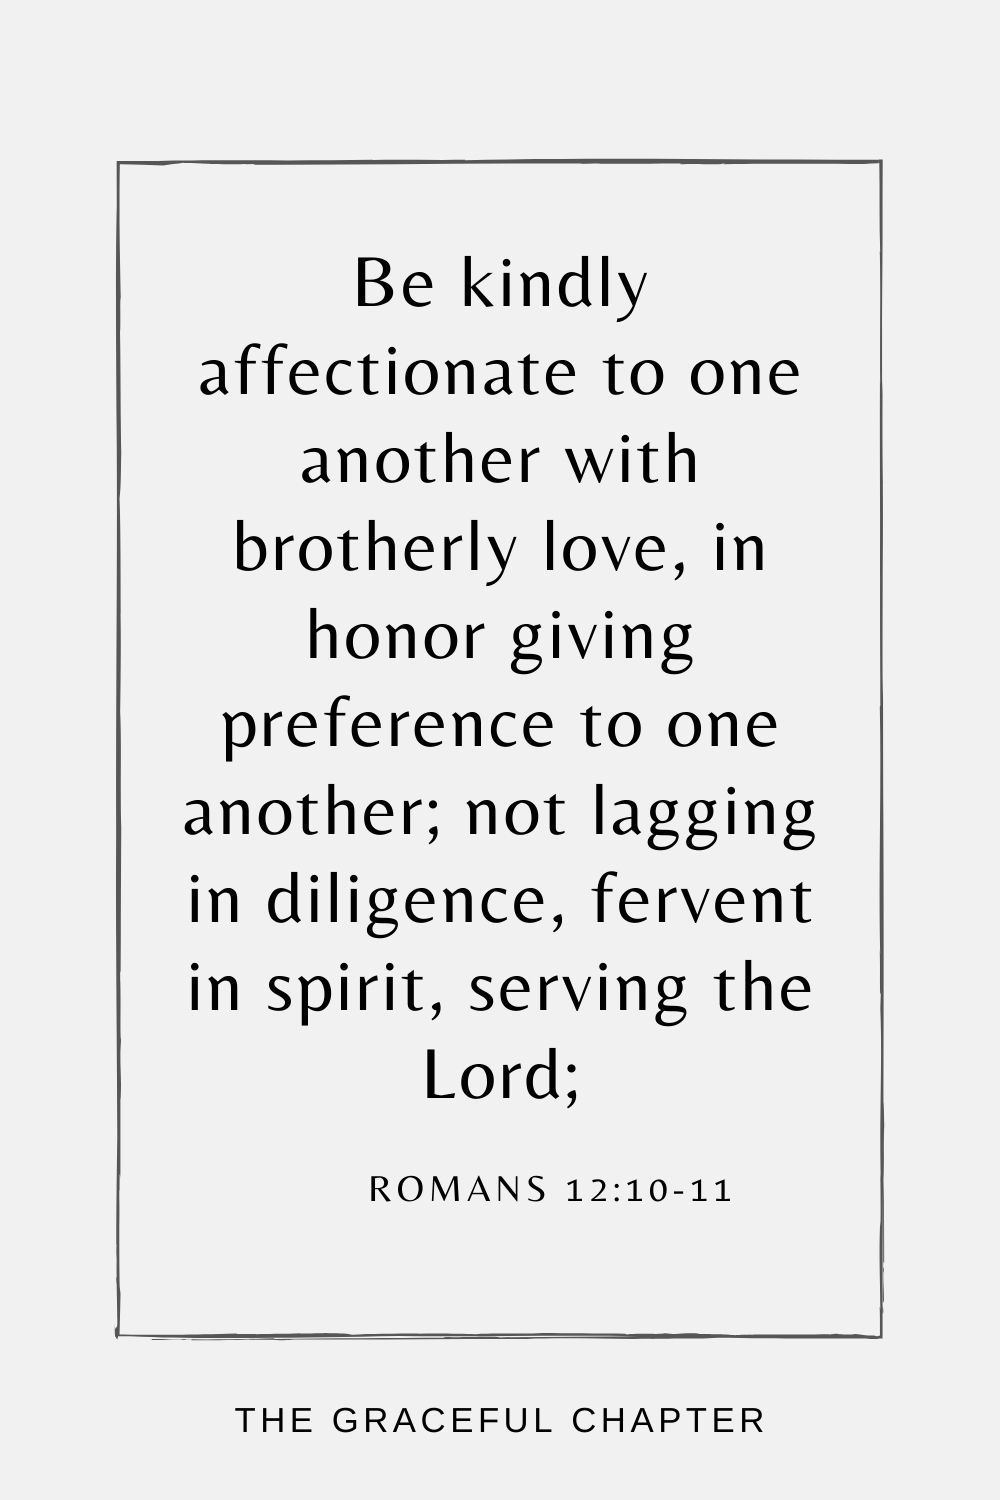 Be kindly affectionate to one another with brotherly love, in honor giving preference to one another; not lagging in diligence, fervent in spirit, serving the Lord; Romans 12:10-11